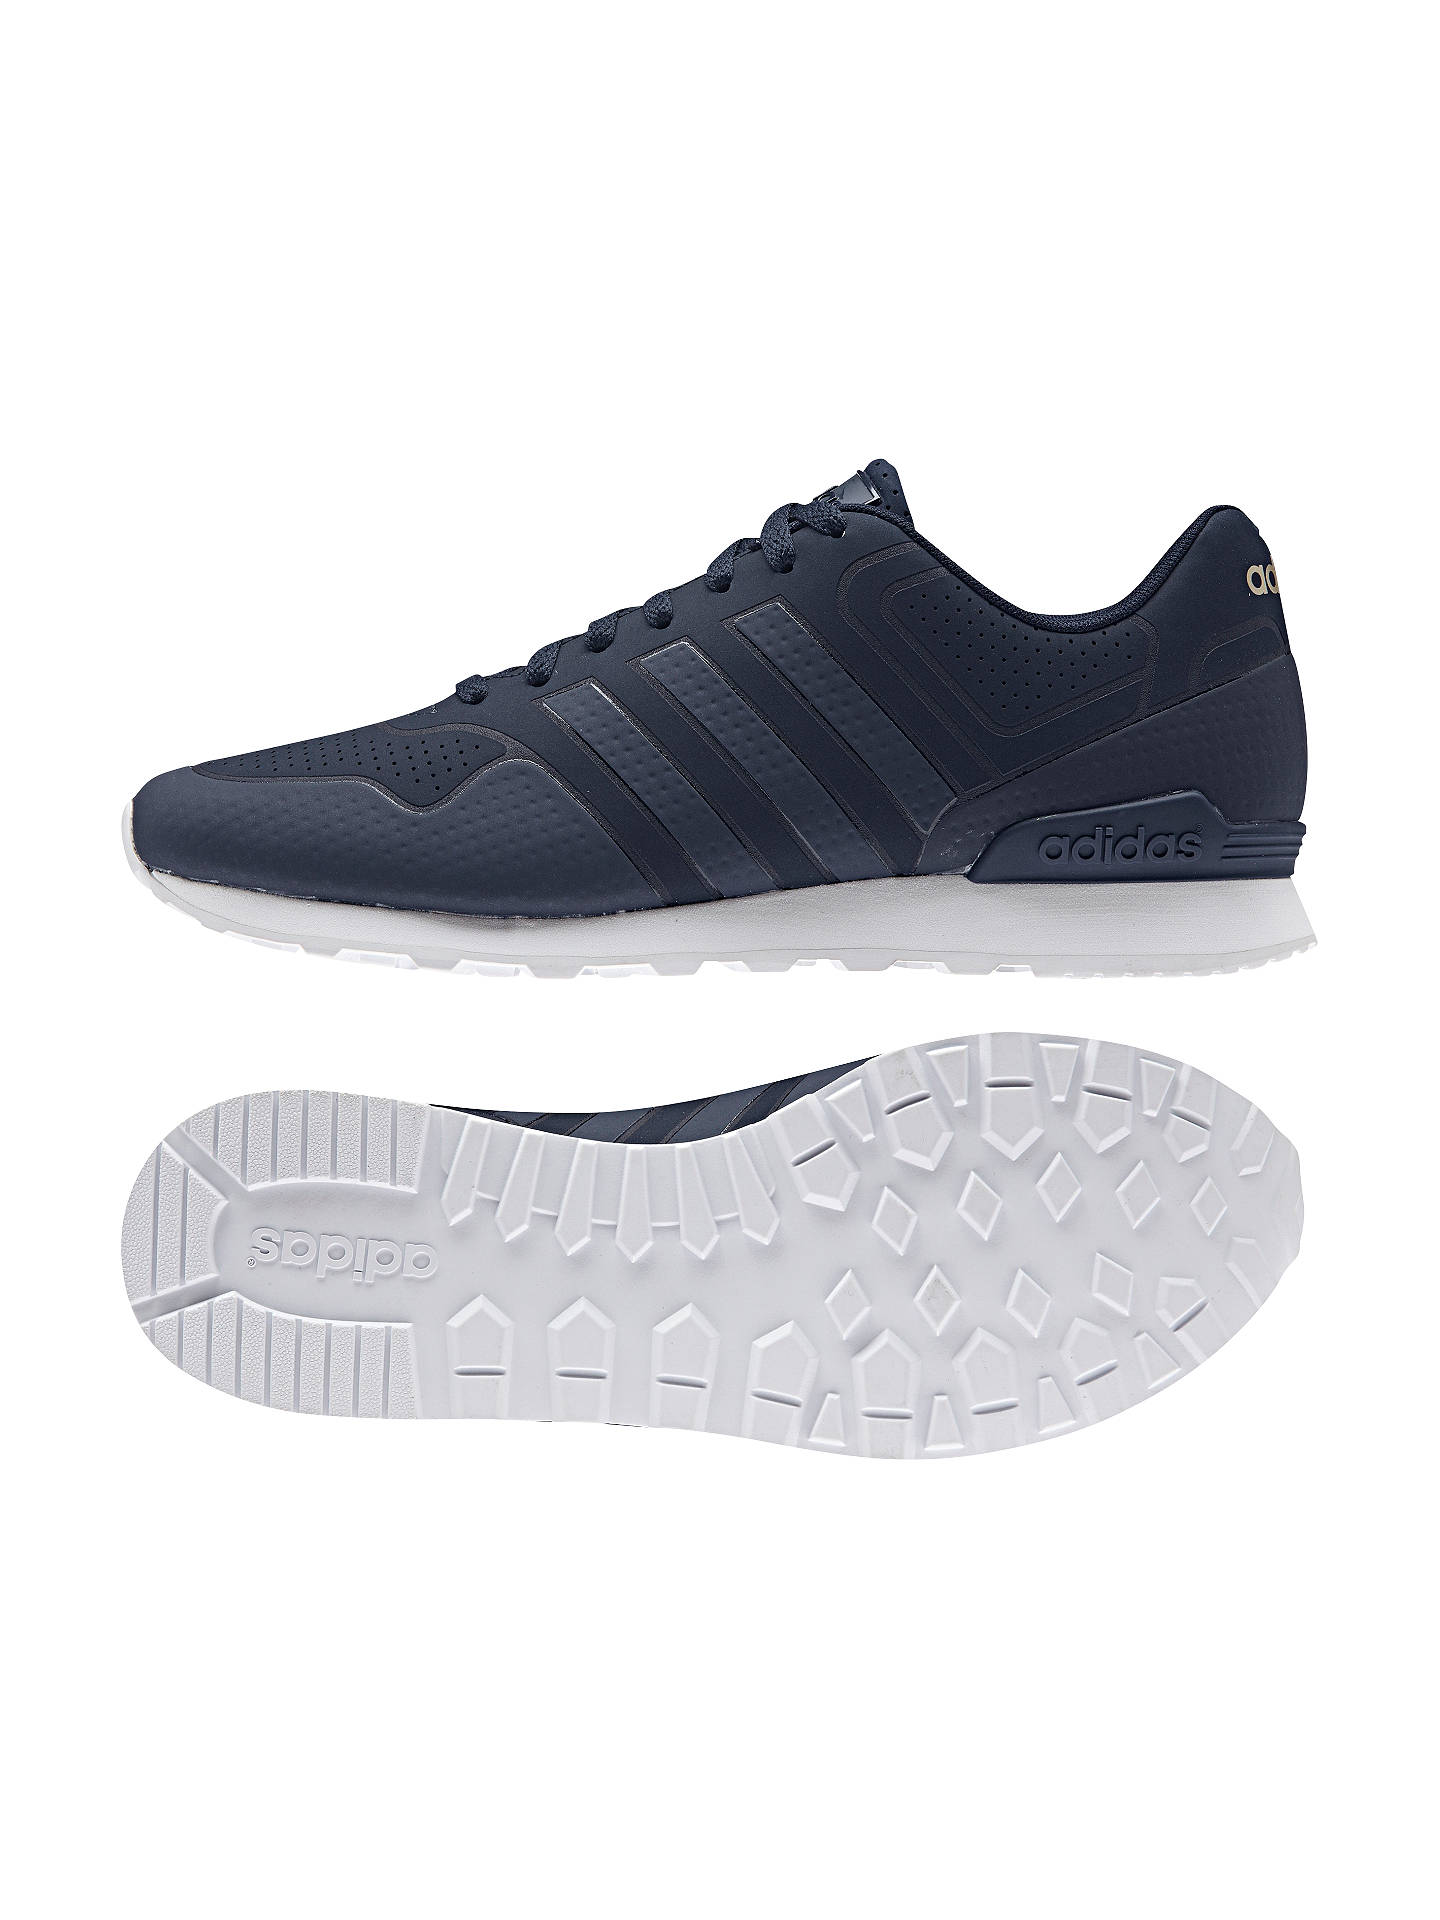 Adidas Neo 10K Casual Men's Trainers, Navy at John Lewis